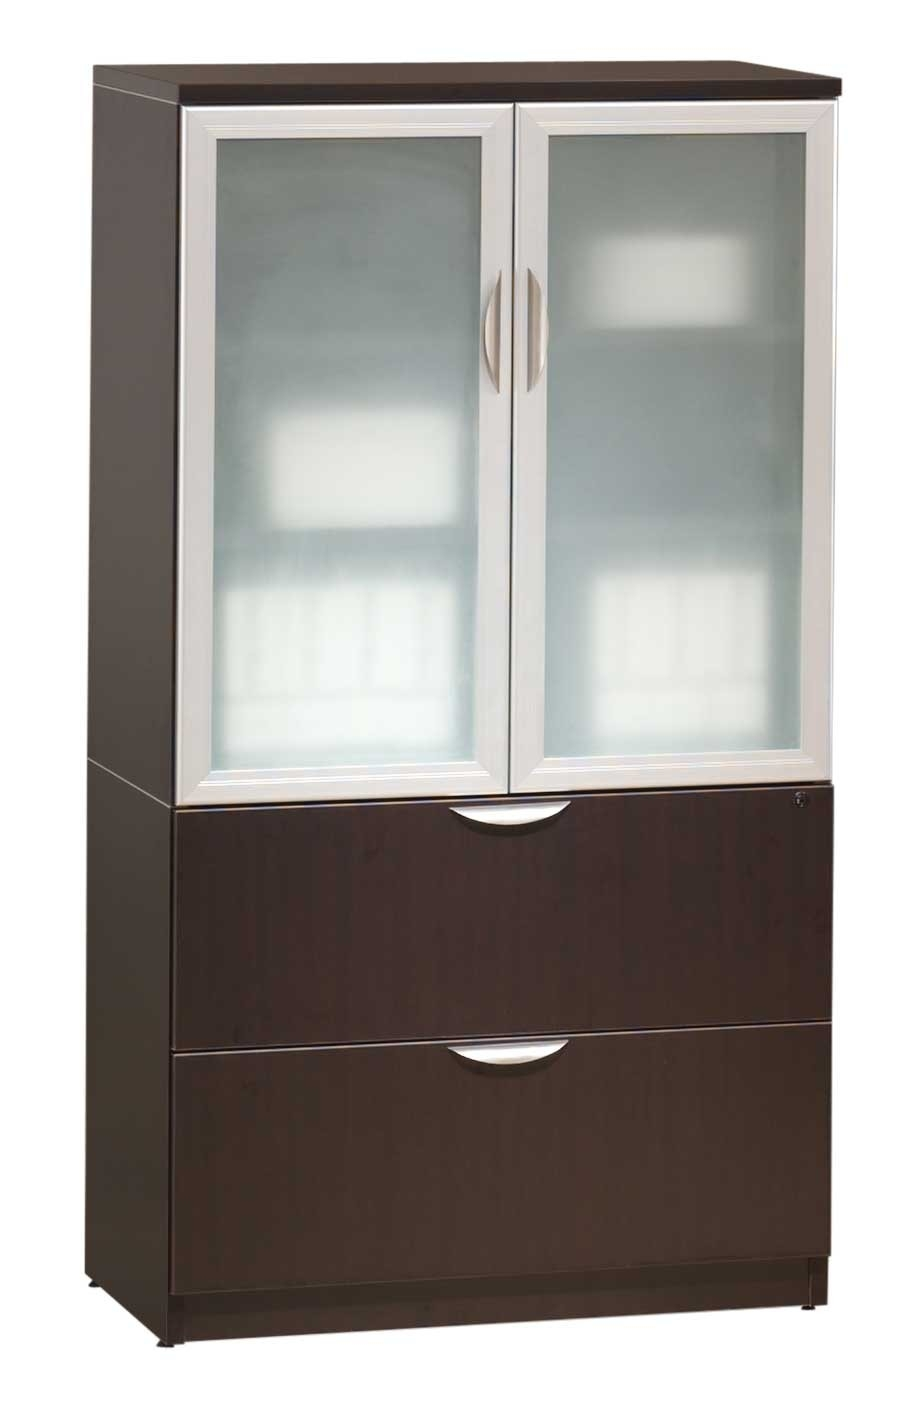 Storage Cabinet With Glass Doors And Drawers